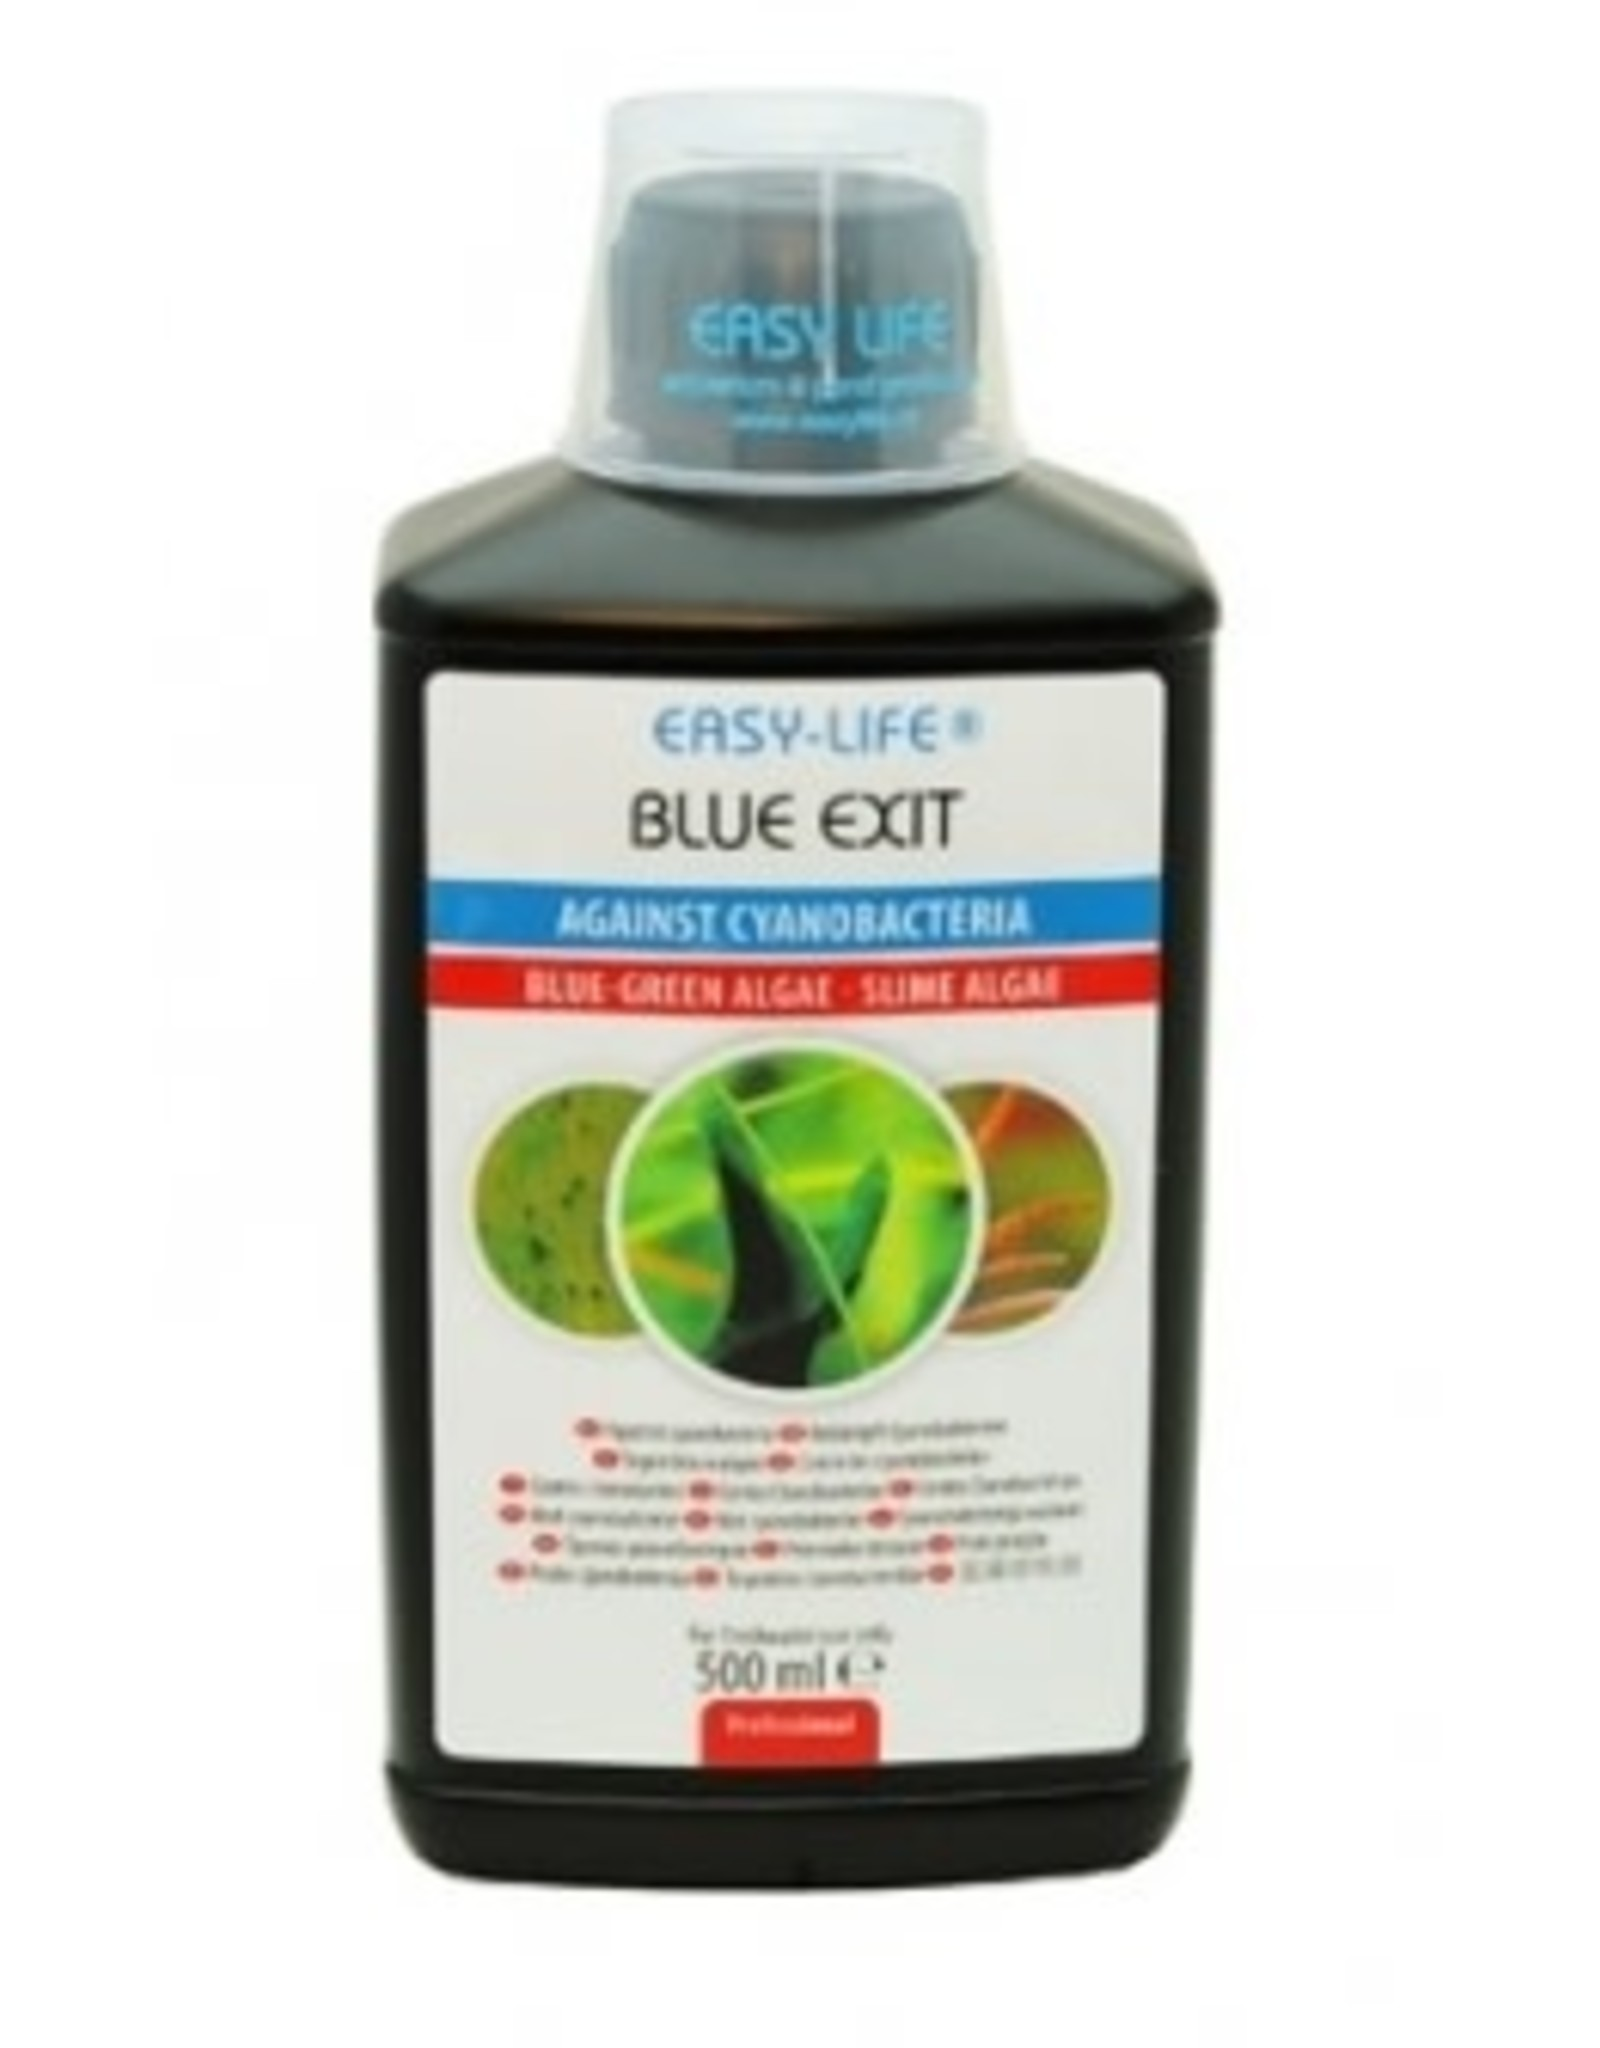 Easy Life BLUE EXIT